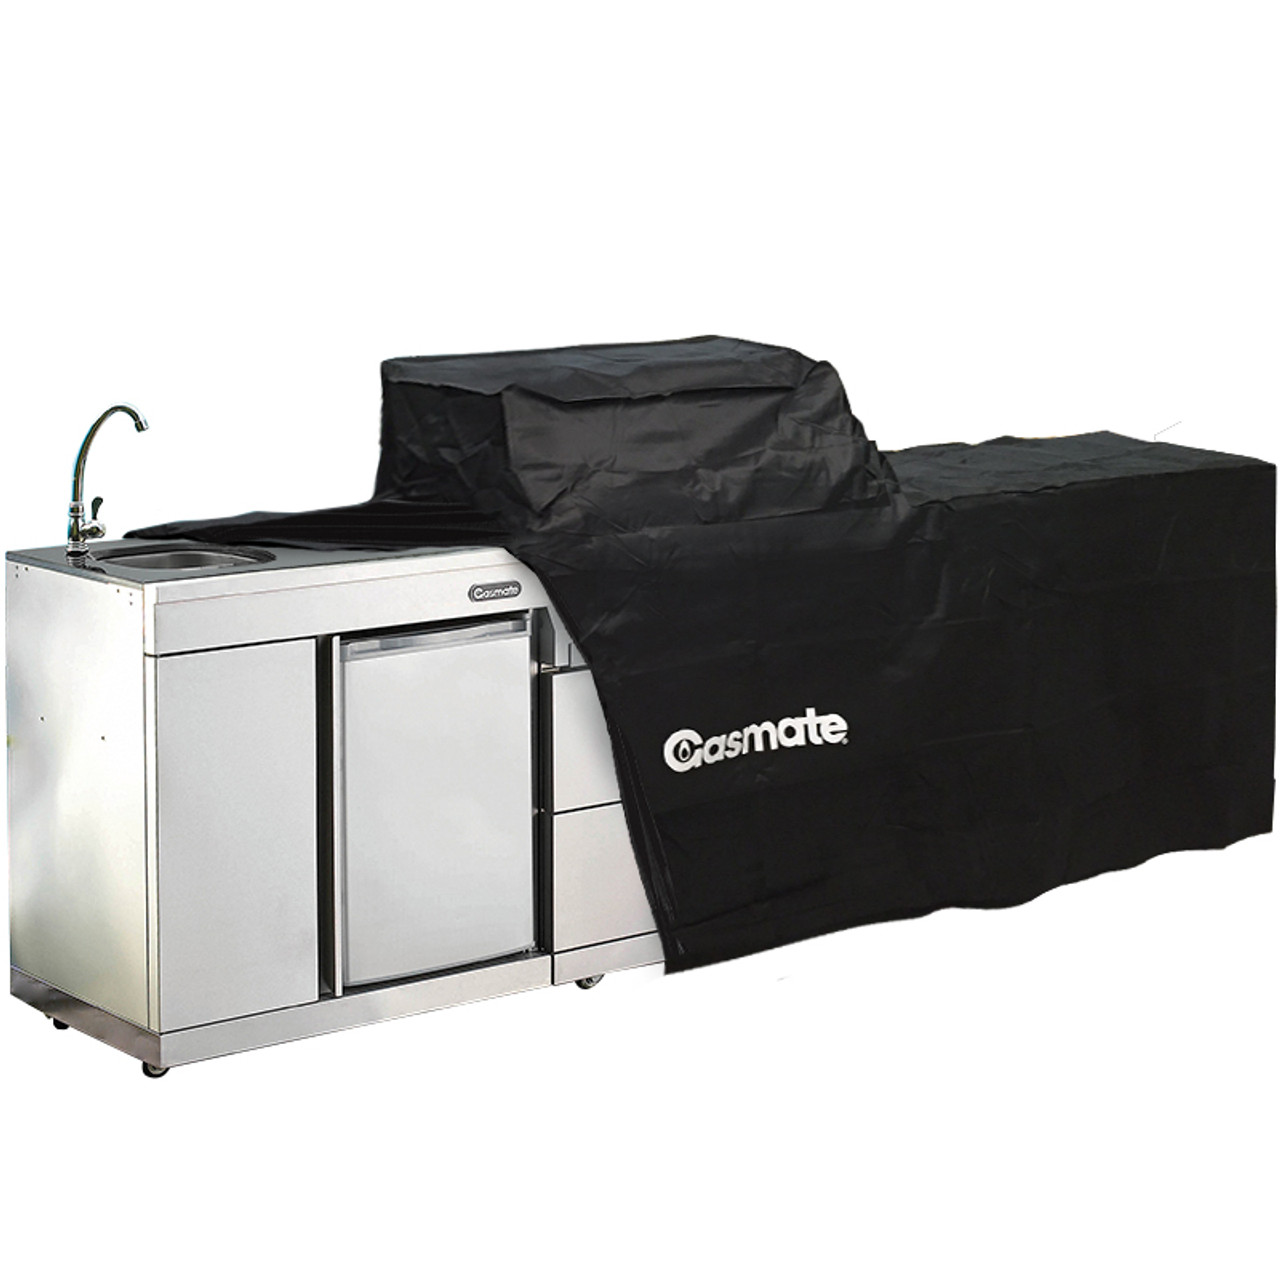 Gasmate Platinum Kitchen 6 Burner BBQ Cover